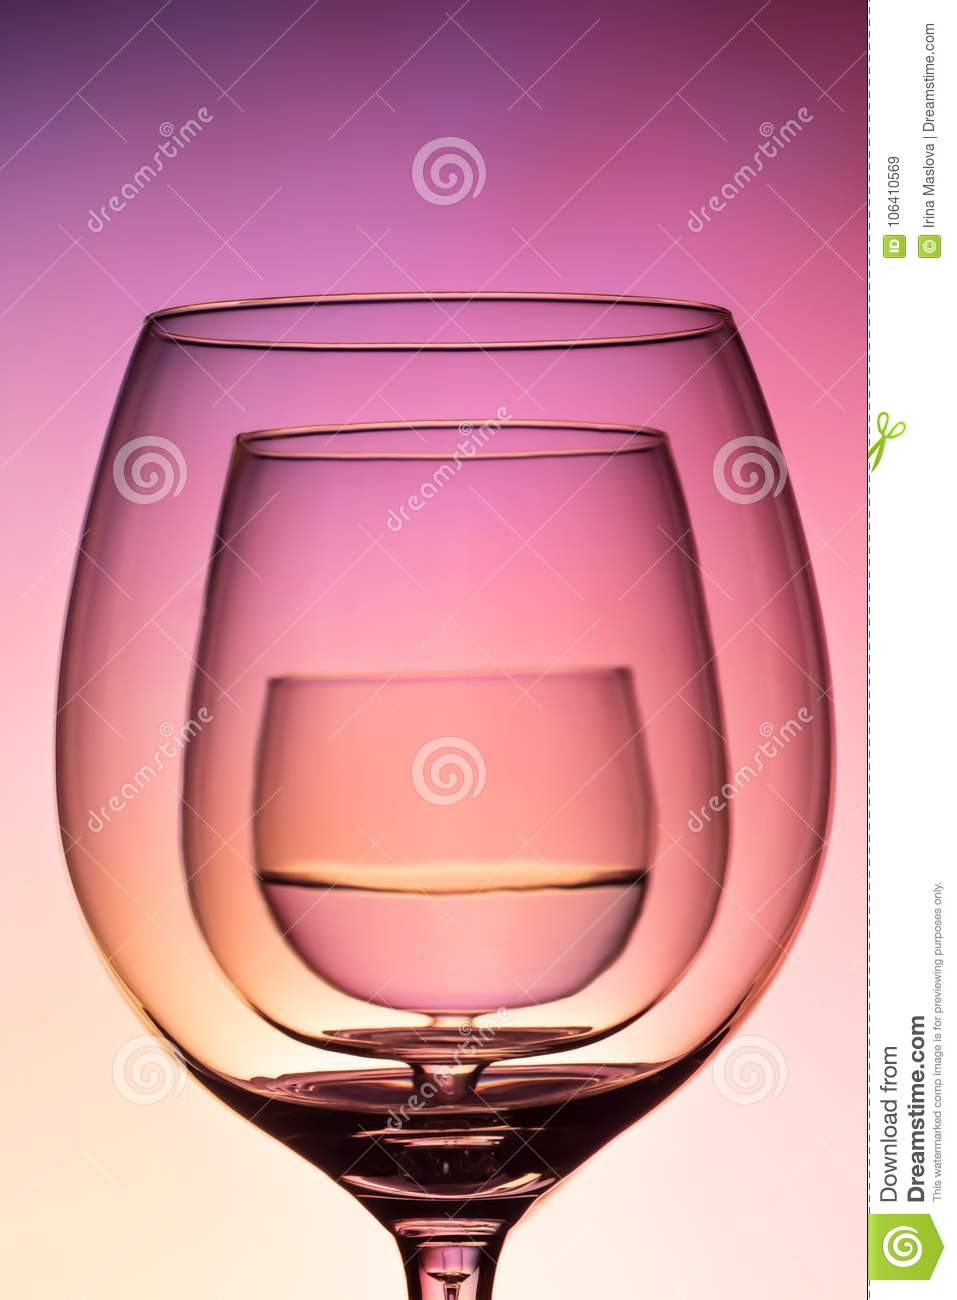 Three empty wineglass for red wine on diffusion lit background in abstract composition with reflection